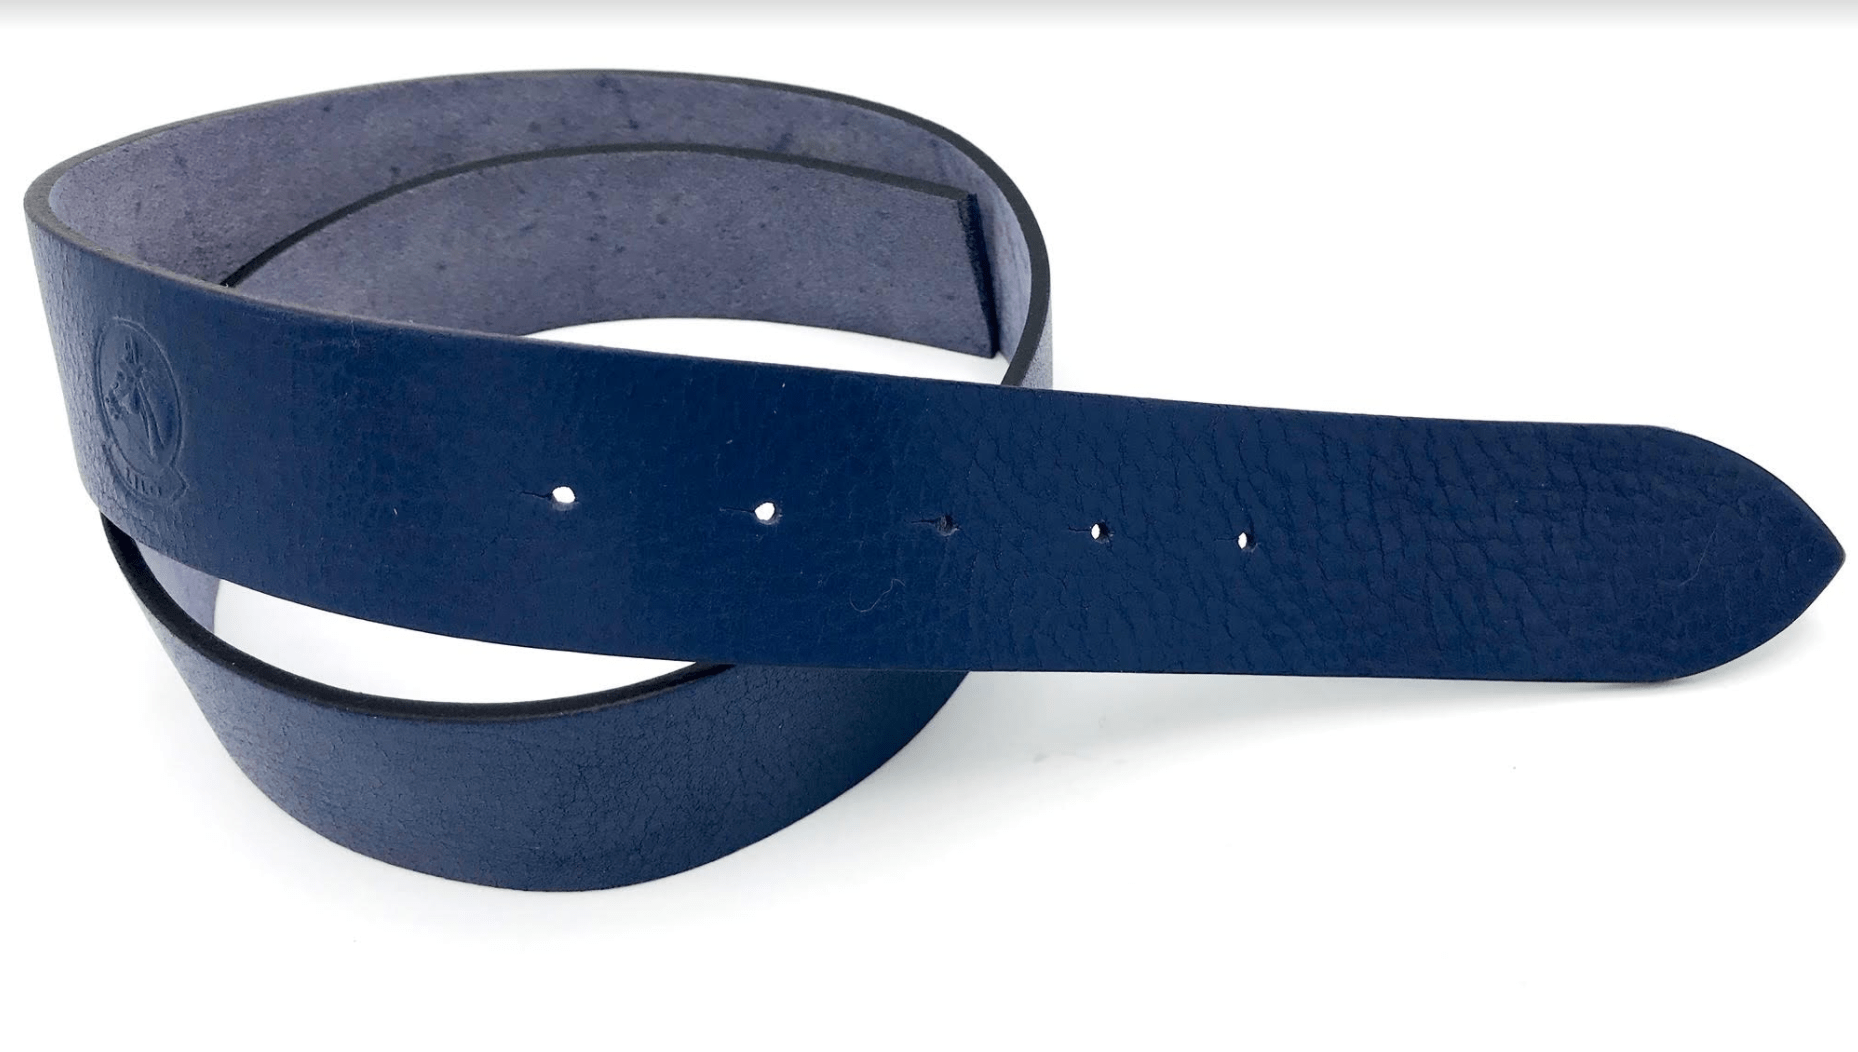 LILO POS Navy LILO 1.5 INCH BELT STRAPS equestrian team apparel online tack store mobile tack store custom farm apparel custom show stable clothing equestrian lifestyle horse show clothing riding clothes horses equestrian tack store